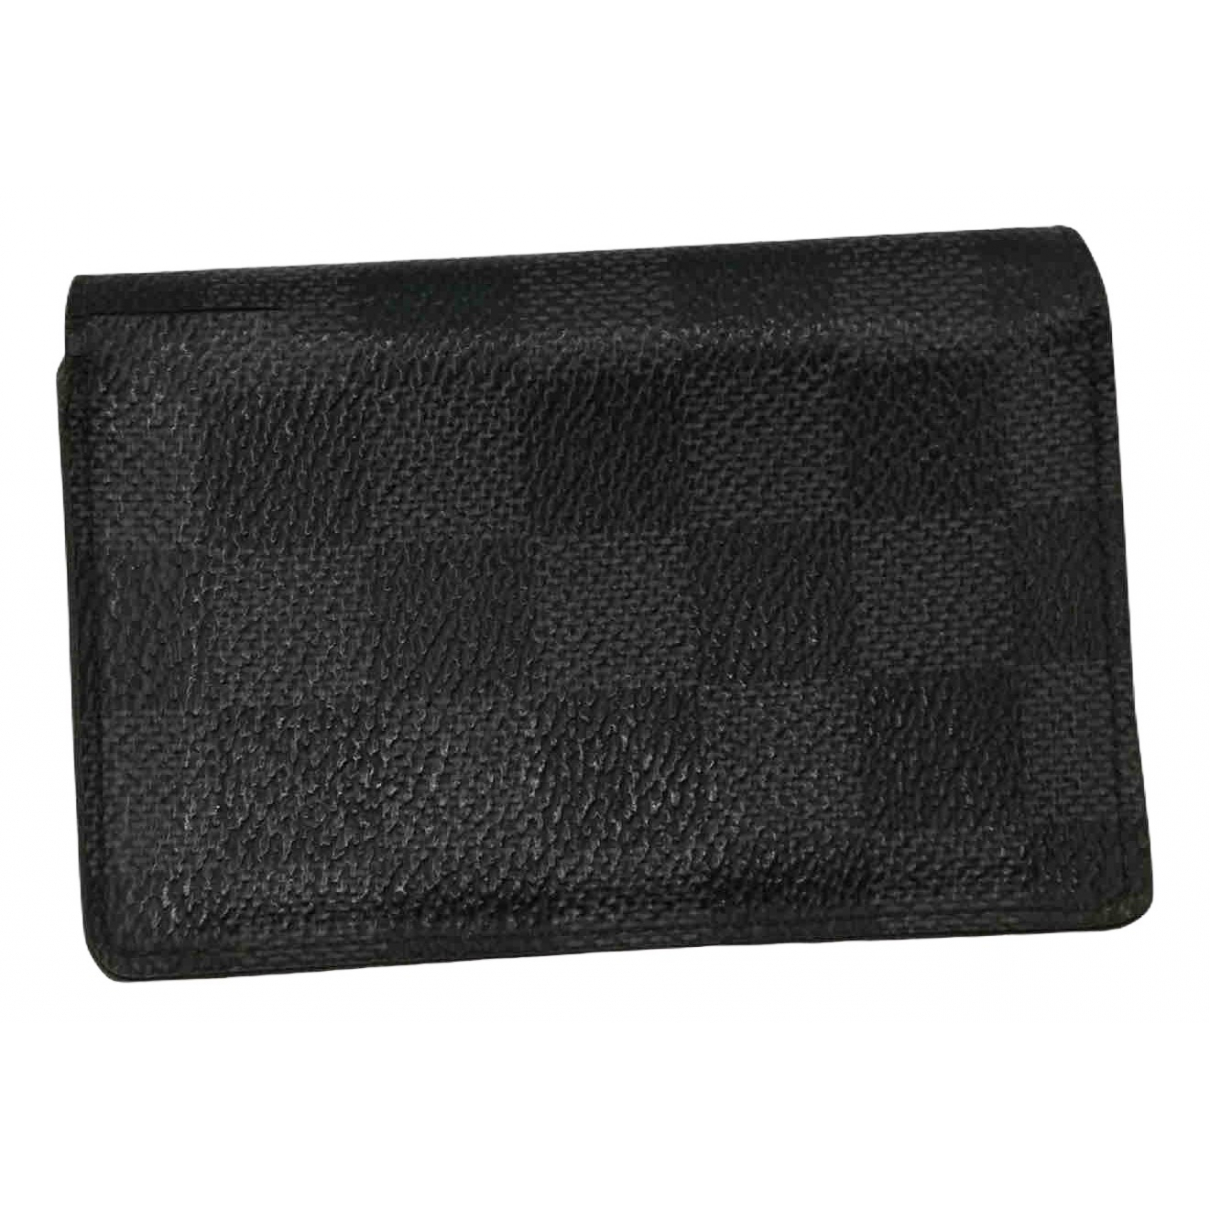 Louis Vuitton Pocket Organizer Kleinlederwaren in  Schwarz Leinen